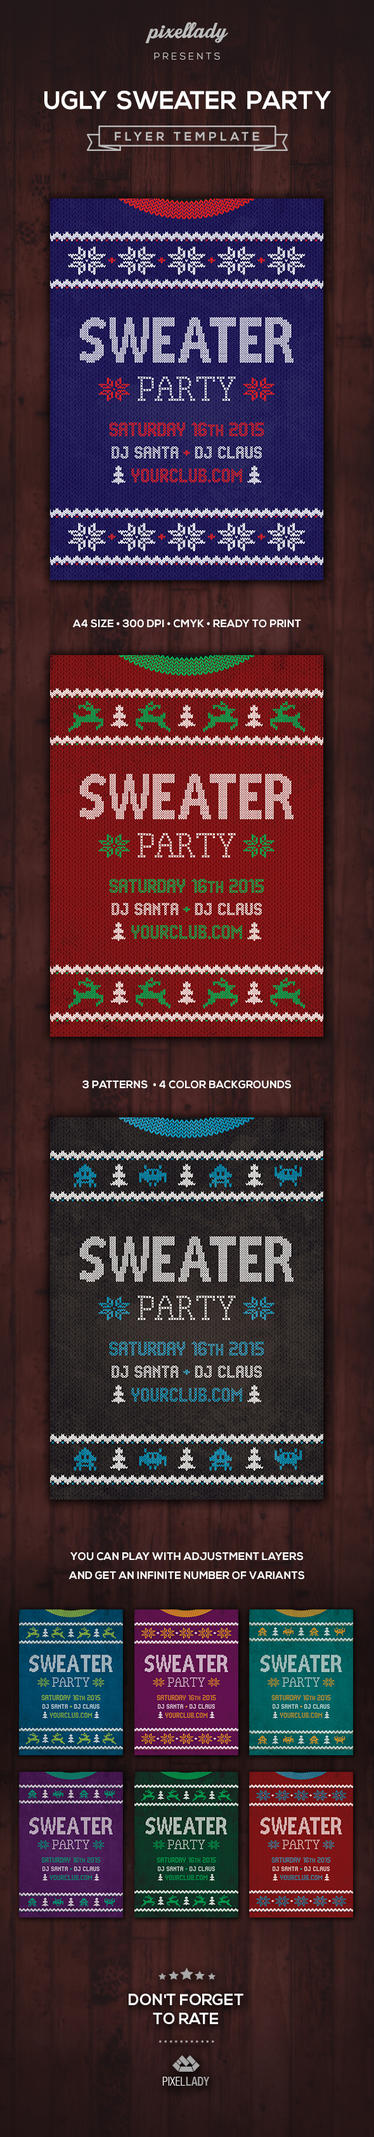 Ugly Sweater Party Flyer by PixelladyArt